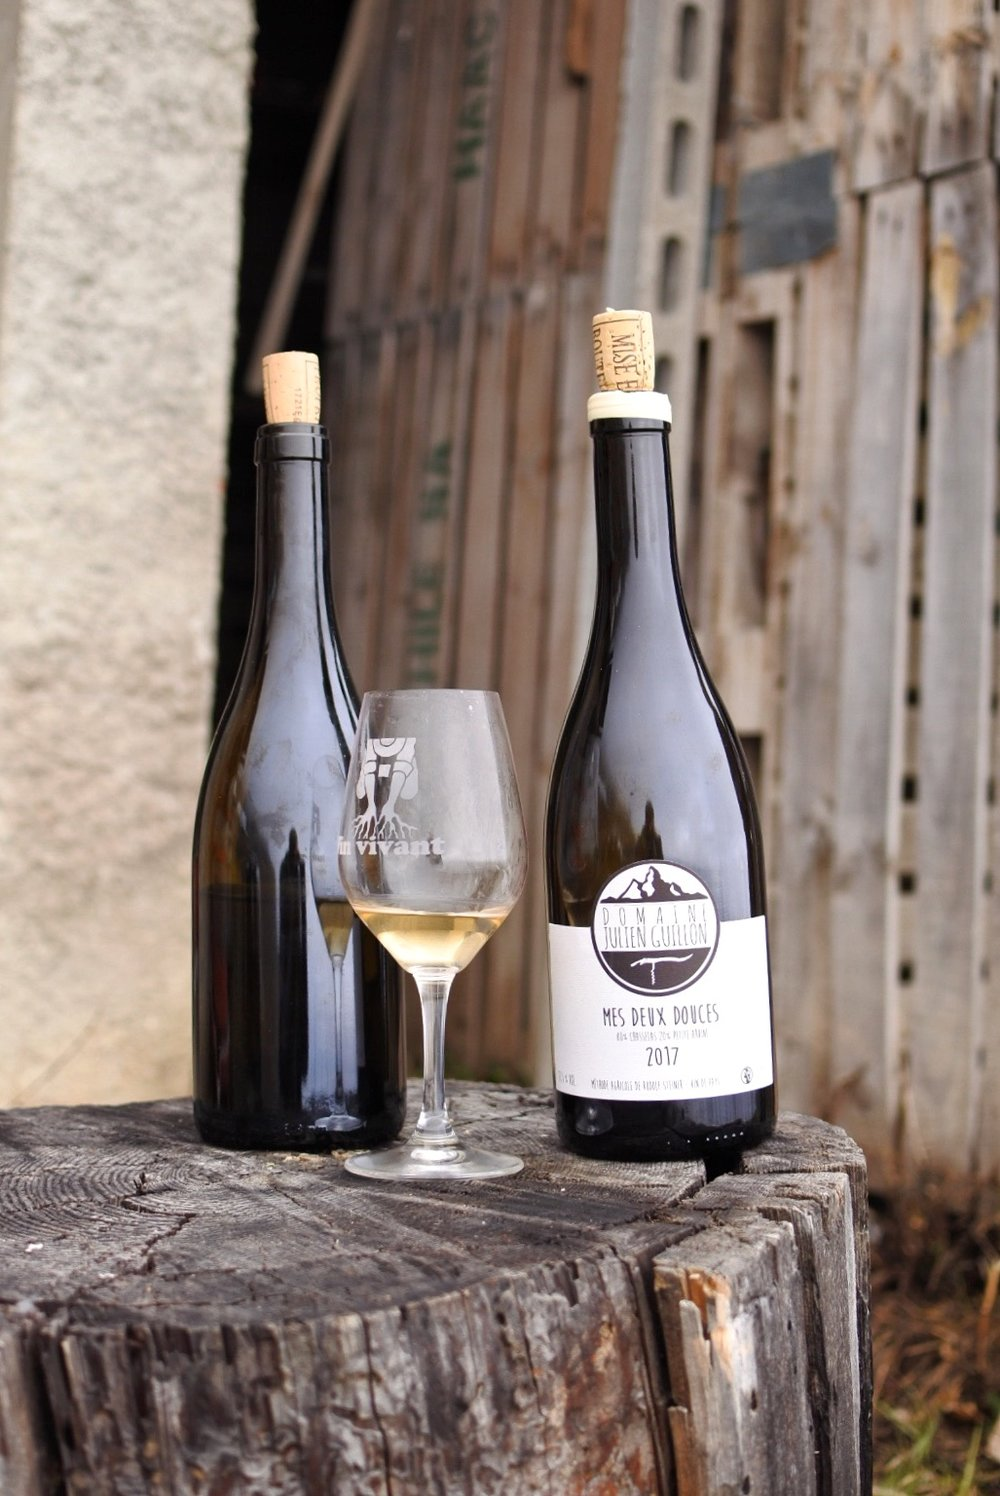 """2017 Mes Deux Douces or """"My two sweets"""", two plots, two grapes, Chasselas and Petite Arvine. Two typical Swiss grapes but blended together in a very atypical wine, that's Julien's touch"""